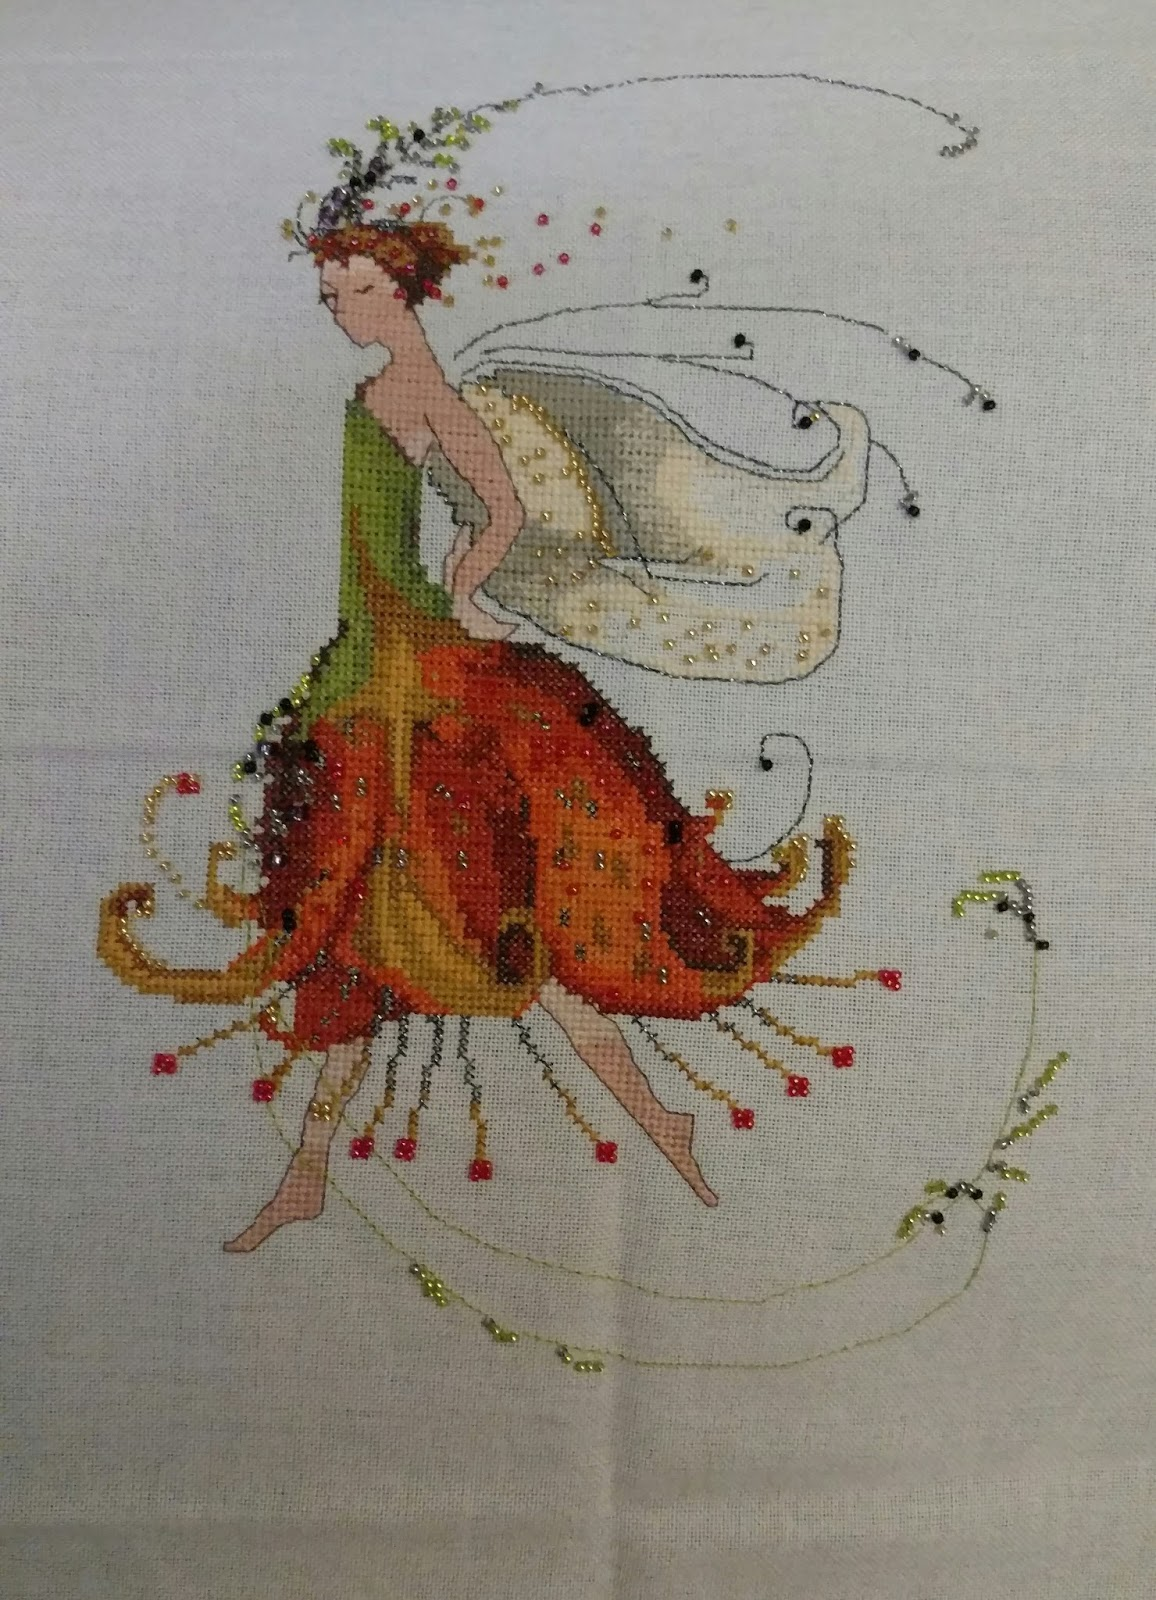 Twistedntangled threads cross stitch tiger lily by nora corbett stitched on 28 ct waterlily by wilchelt using dmc kreinik threads plus mill hill beads nvjuhfo Image collections